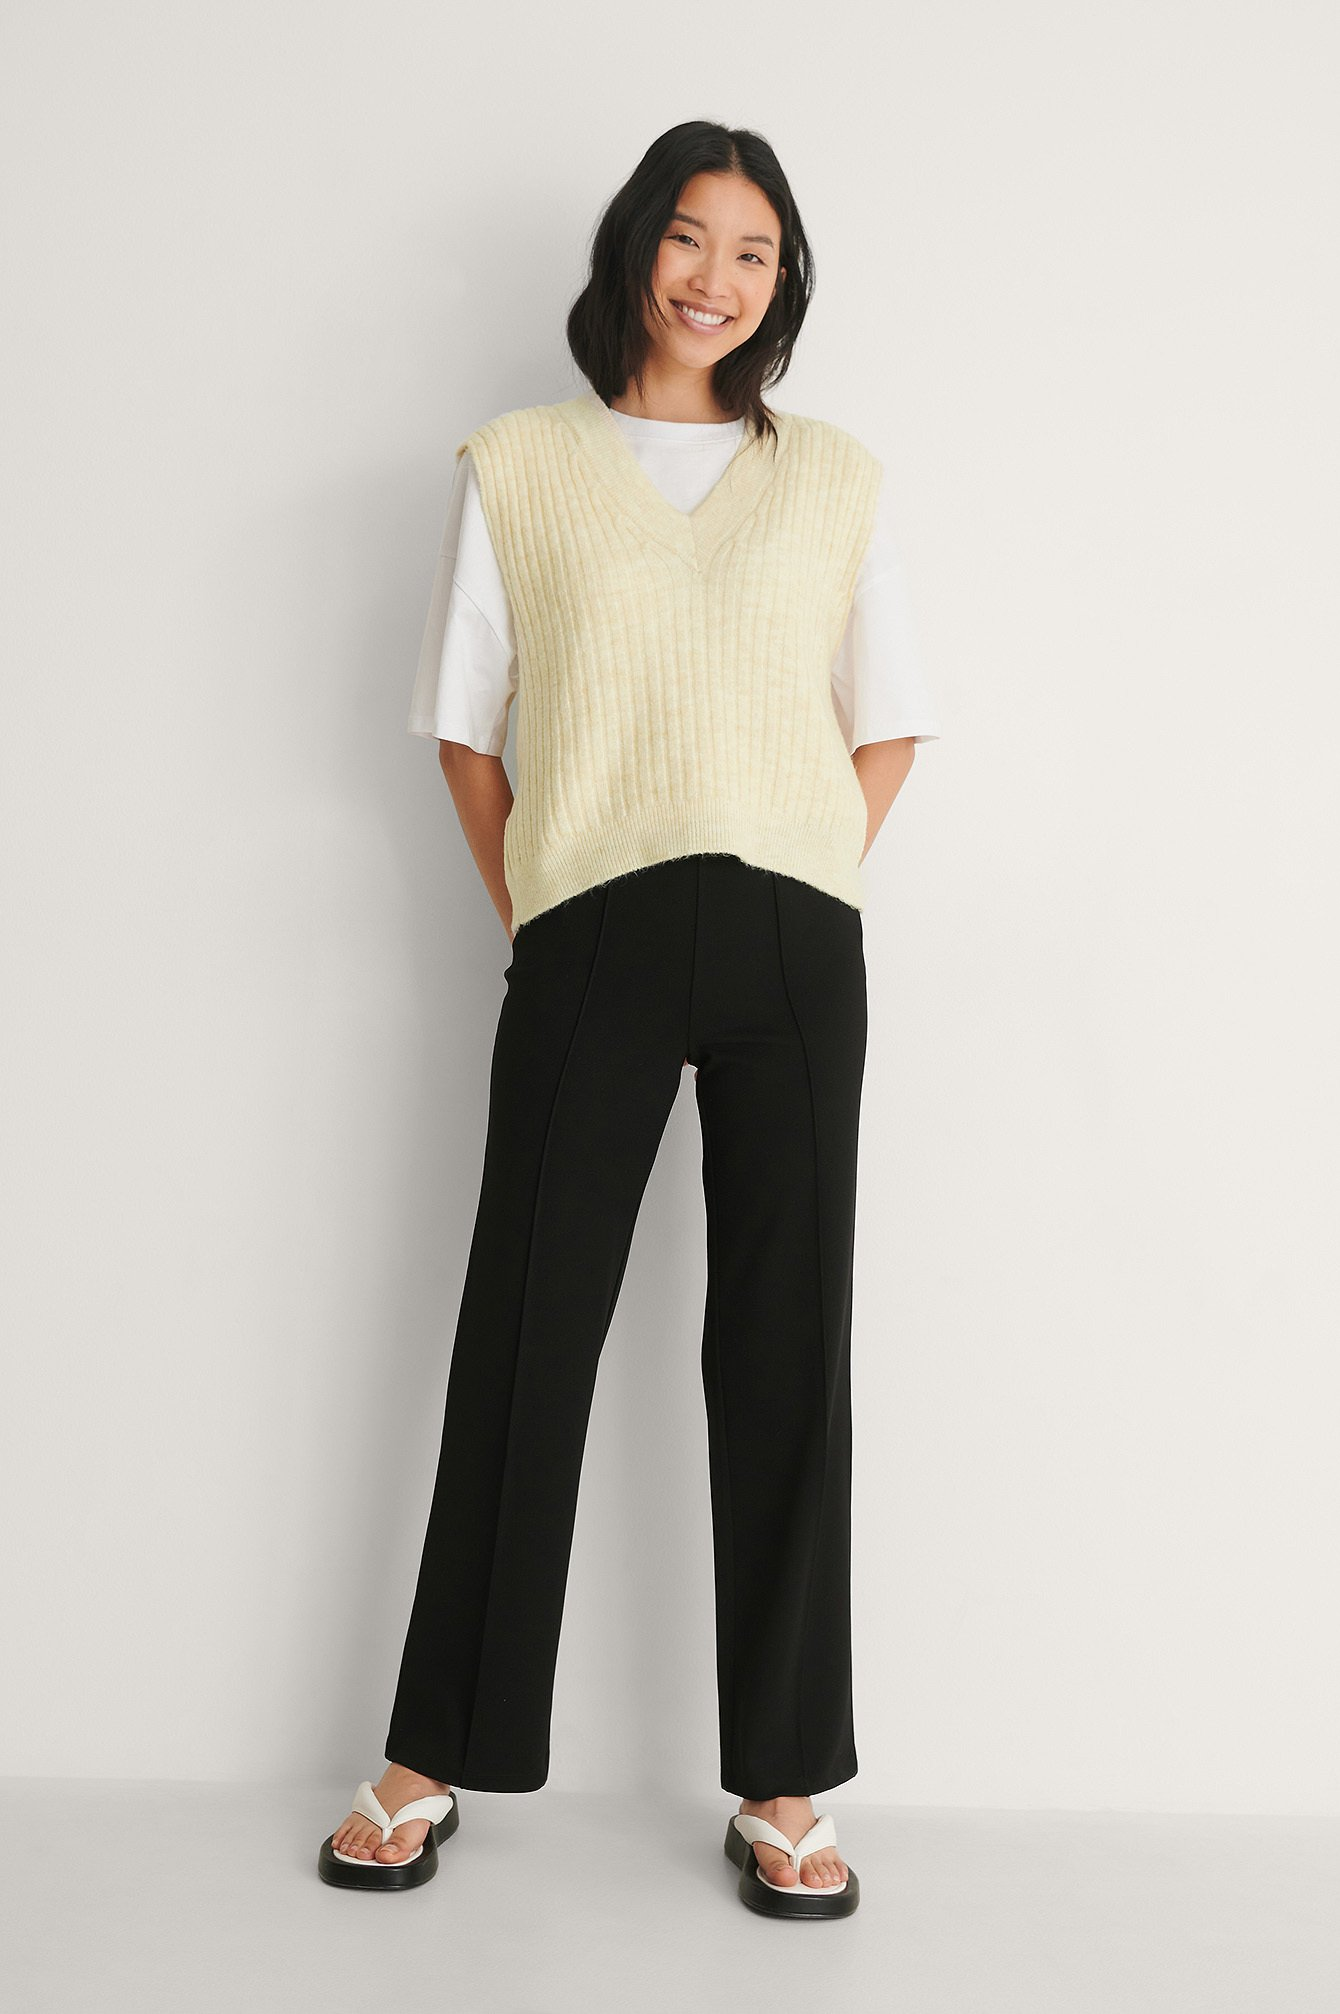 Crepe Seam Detail Pants Outfit